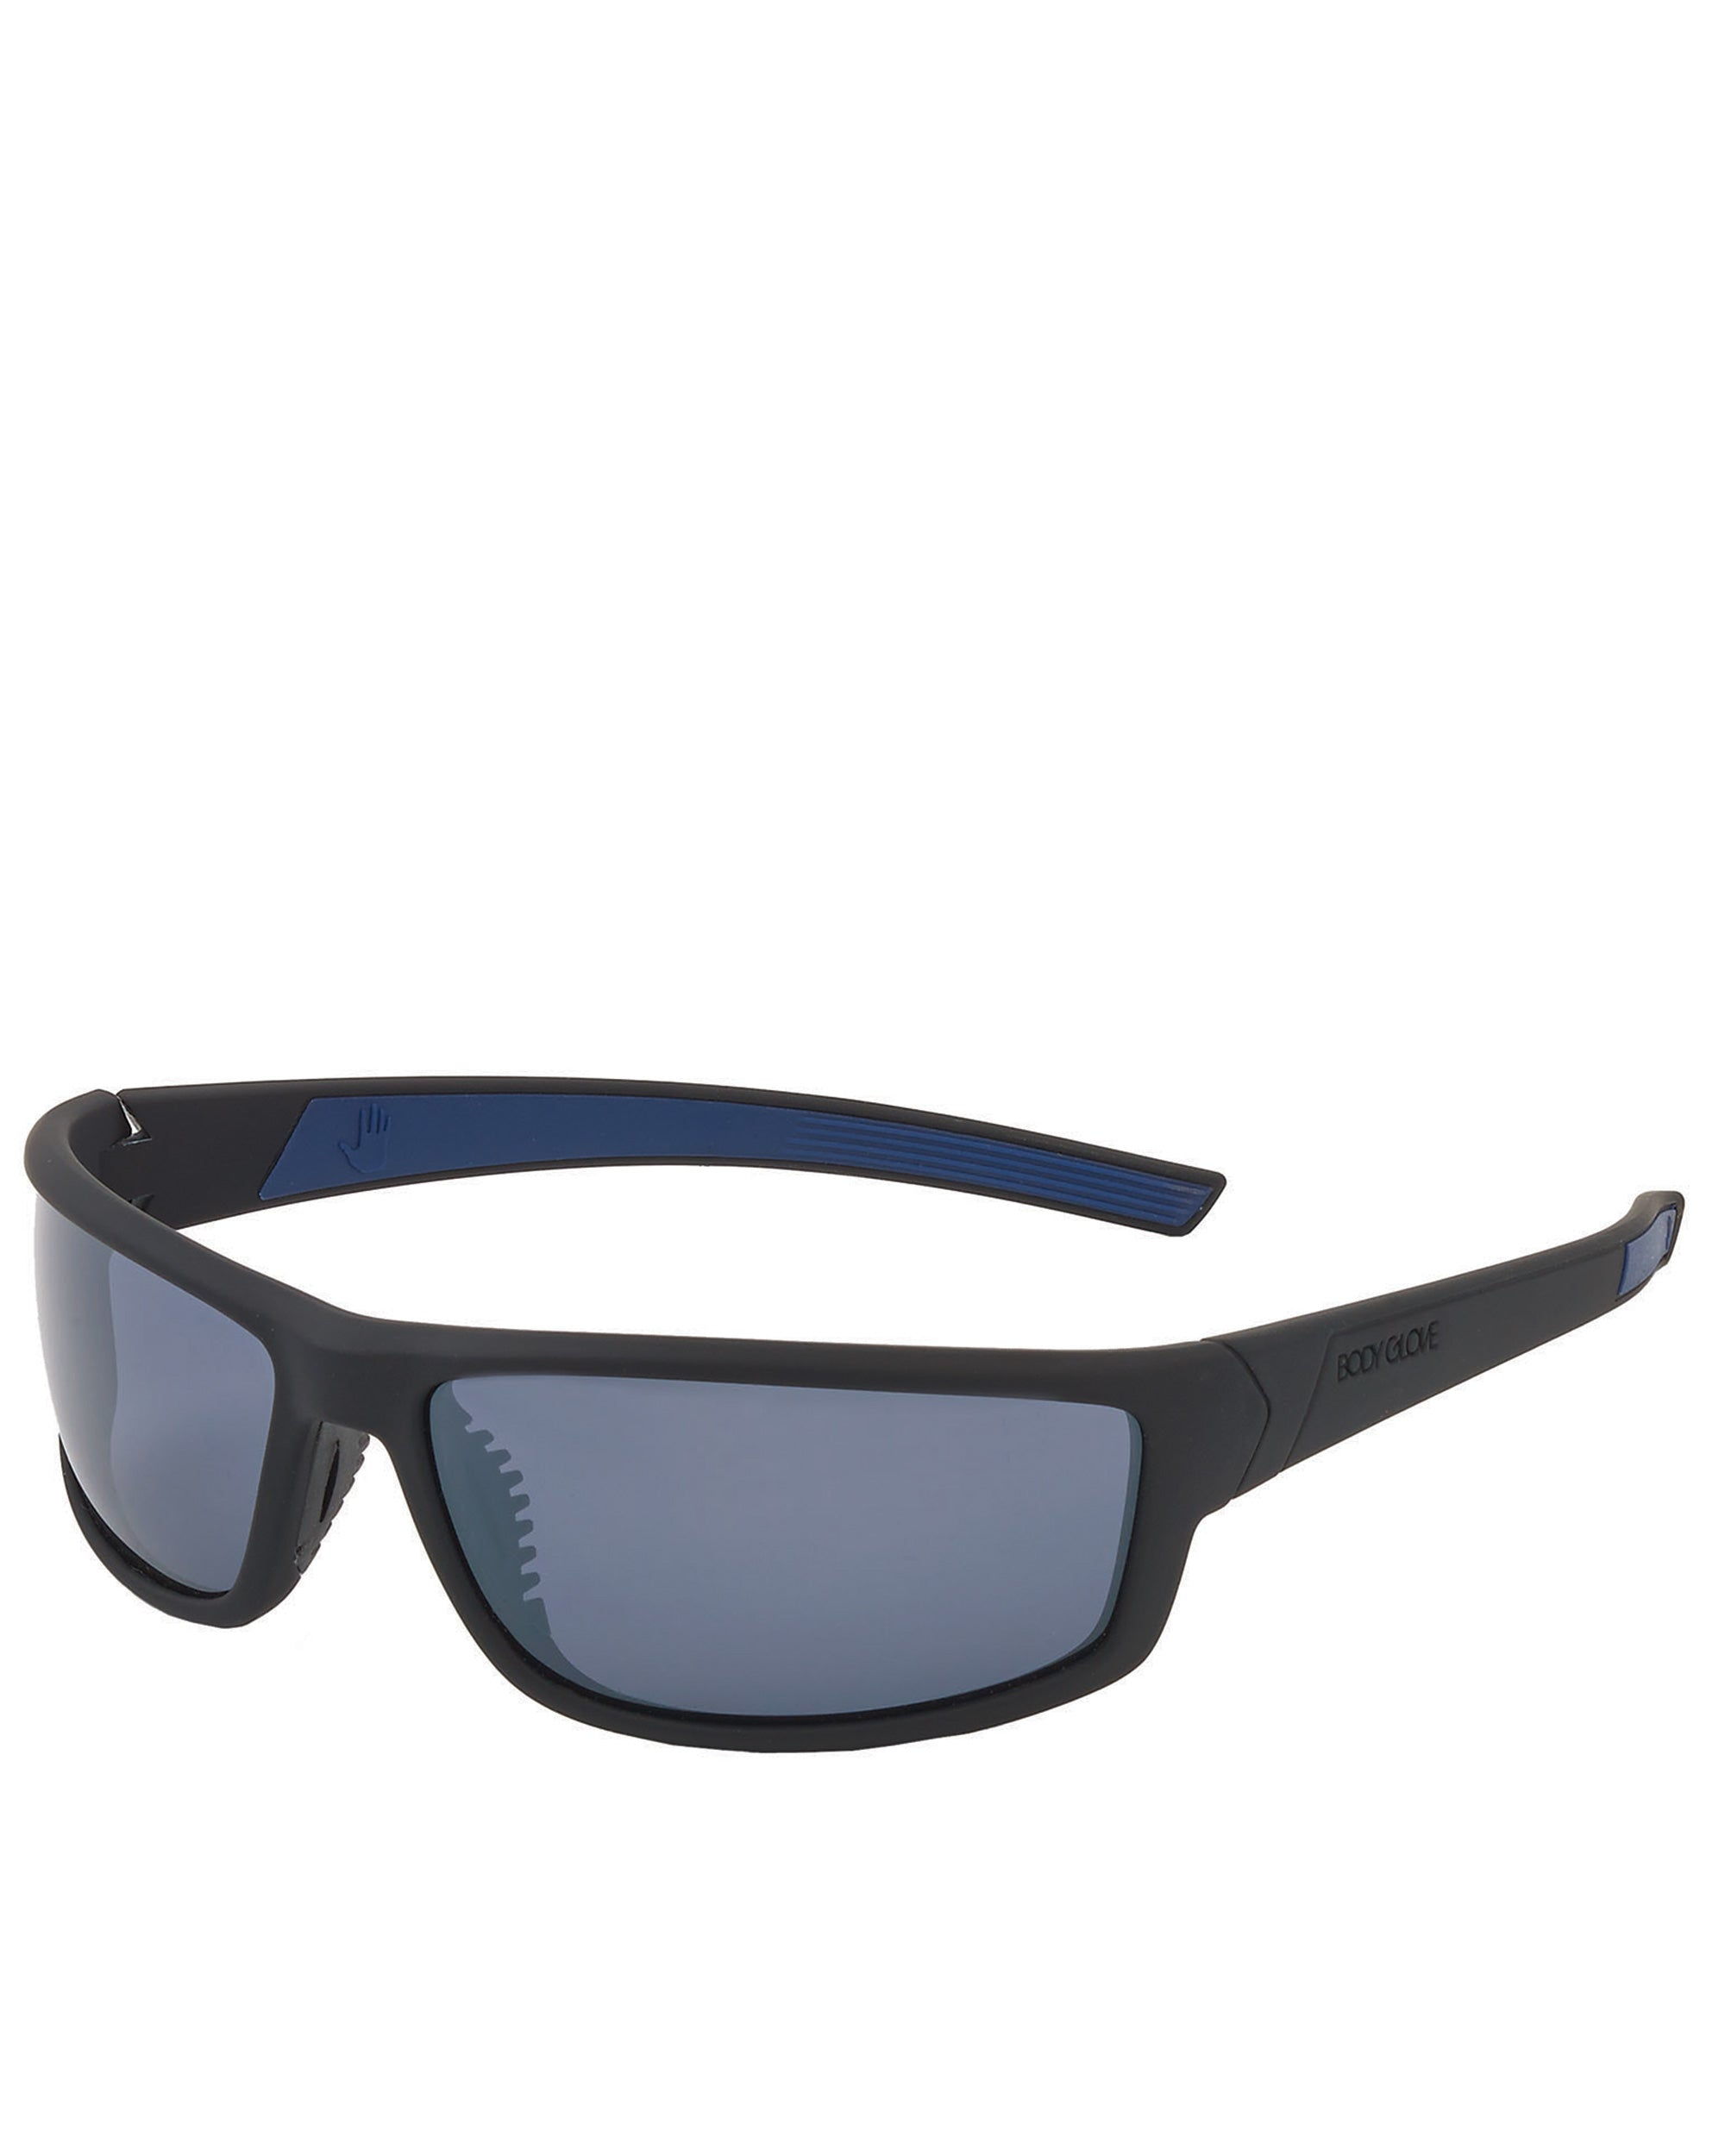 Men's Vapor 16 Polarized Sport Sunglasses - Black